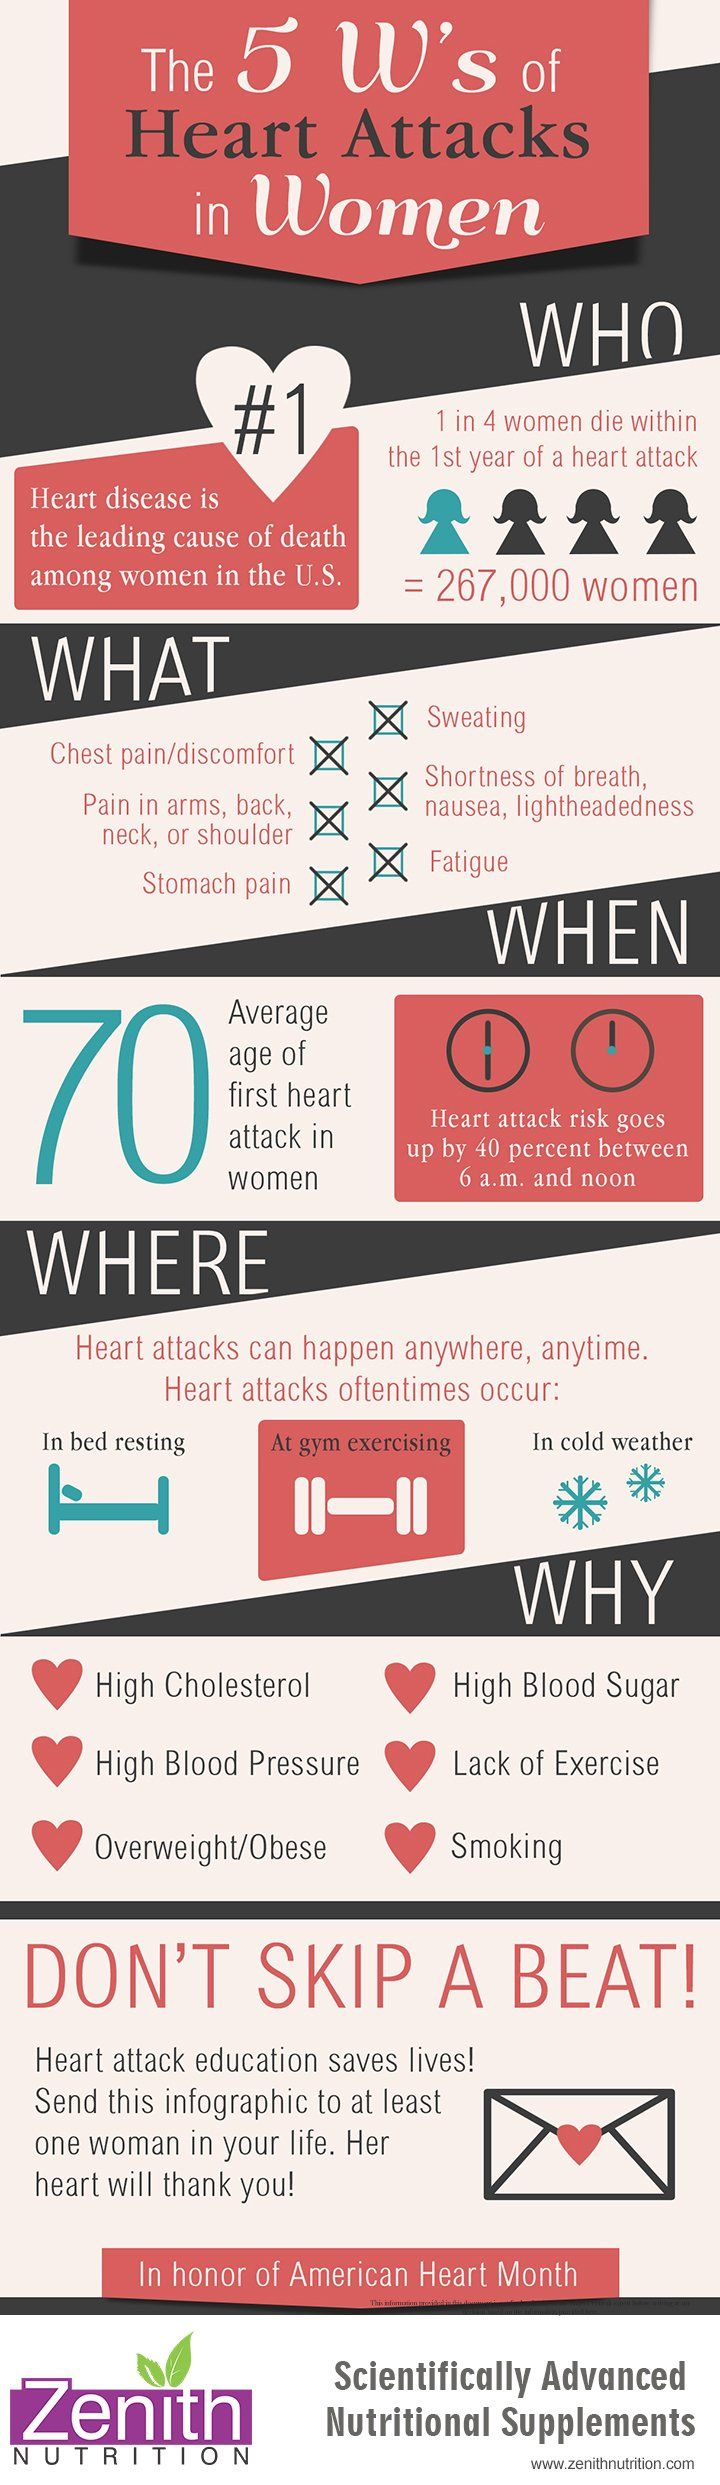 The 5 W's Of Heart Attacks In Women. Causes of heart attack - high cholesterol, high blood pressure, over weight/obese, high blood sugar, lack of exercise, smoking. Best supplements from Zenith Nutrition. Health Supplements. Nutritional Supplements. Health Infographics